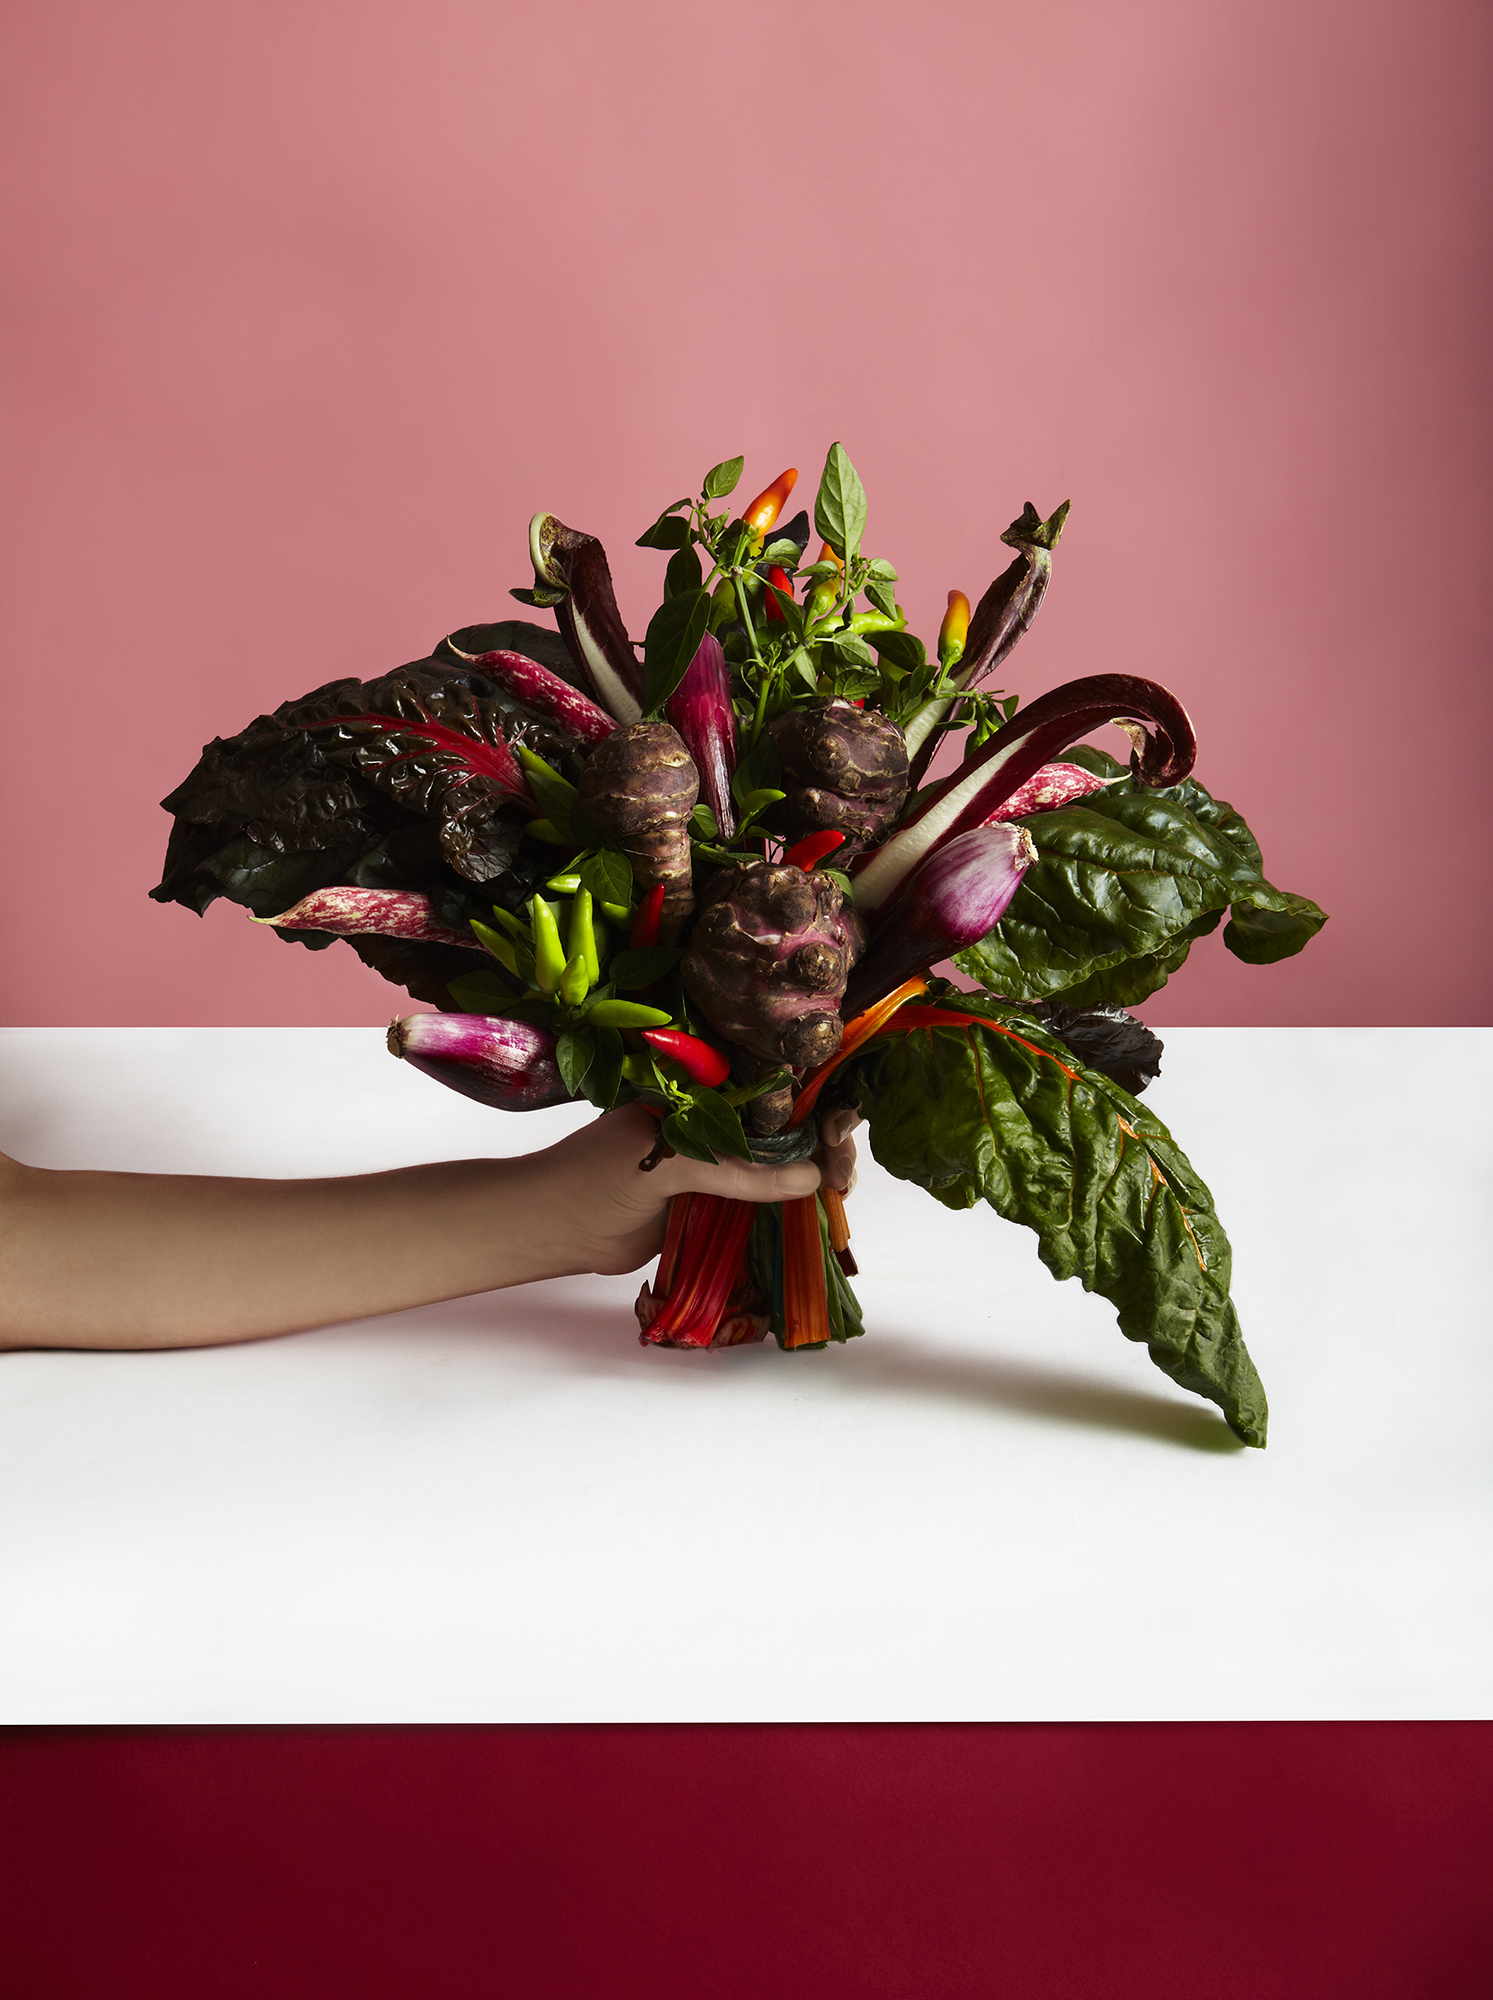 katie hammond love veg wild and red still life food photography